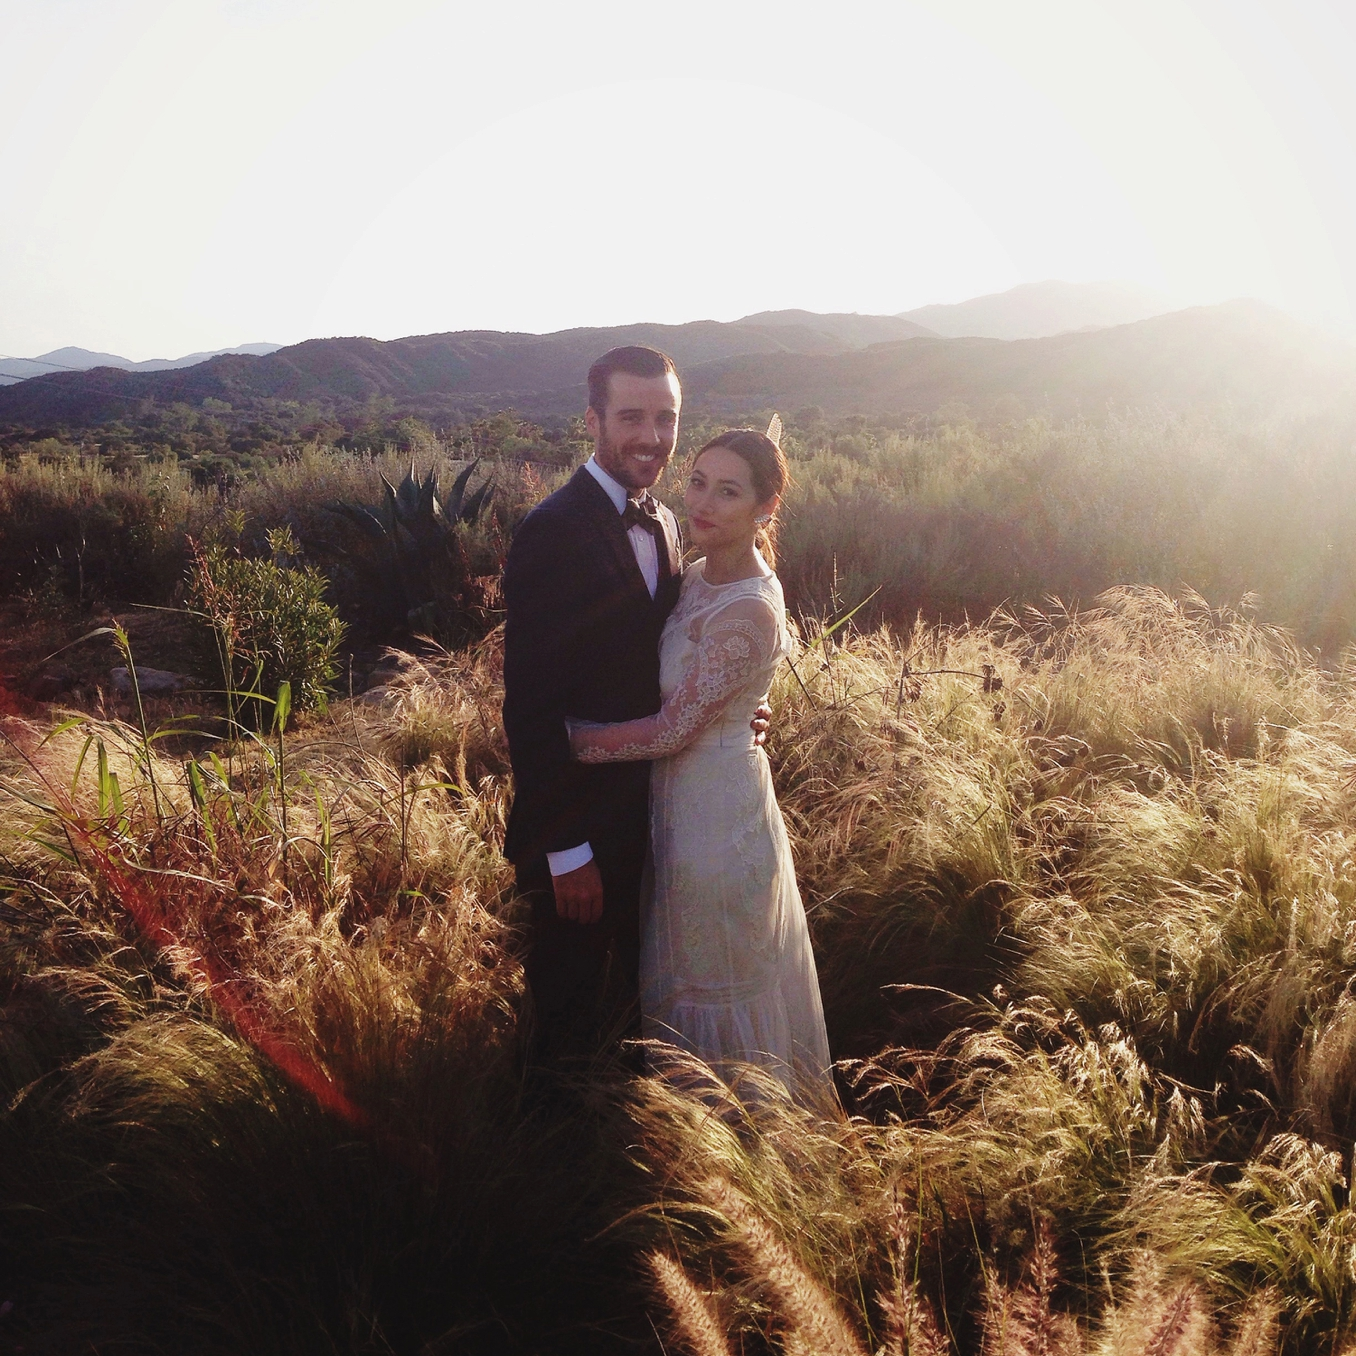 Tessa and Andy's gorgeous Ojai wedding photo by STUDIO 1208